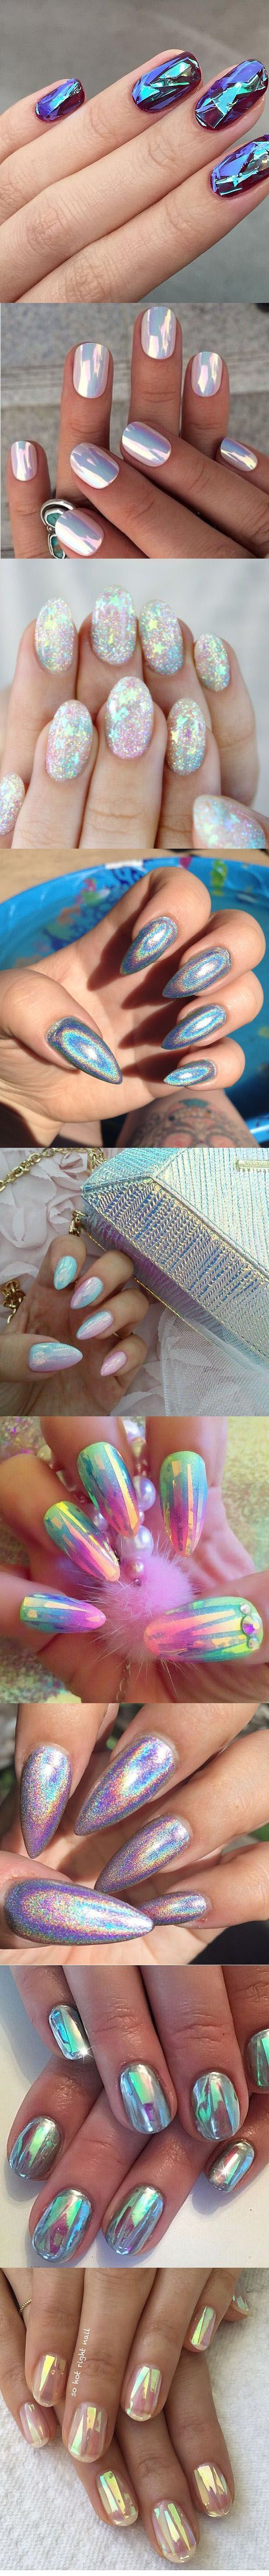 444 best Nagel images on Pinterest | Nail scissors, Cute nails and ...